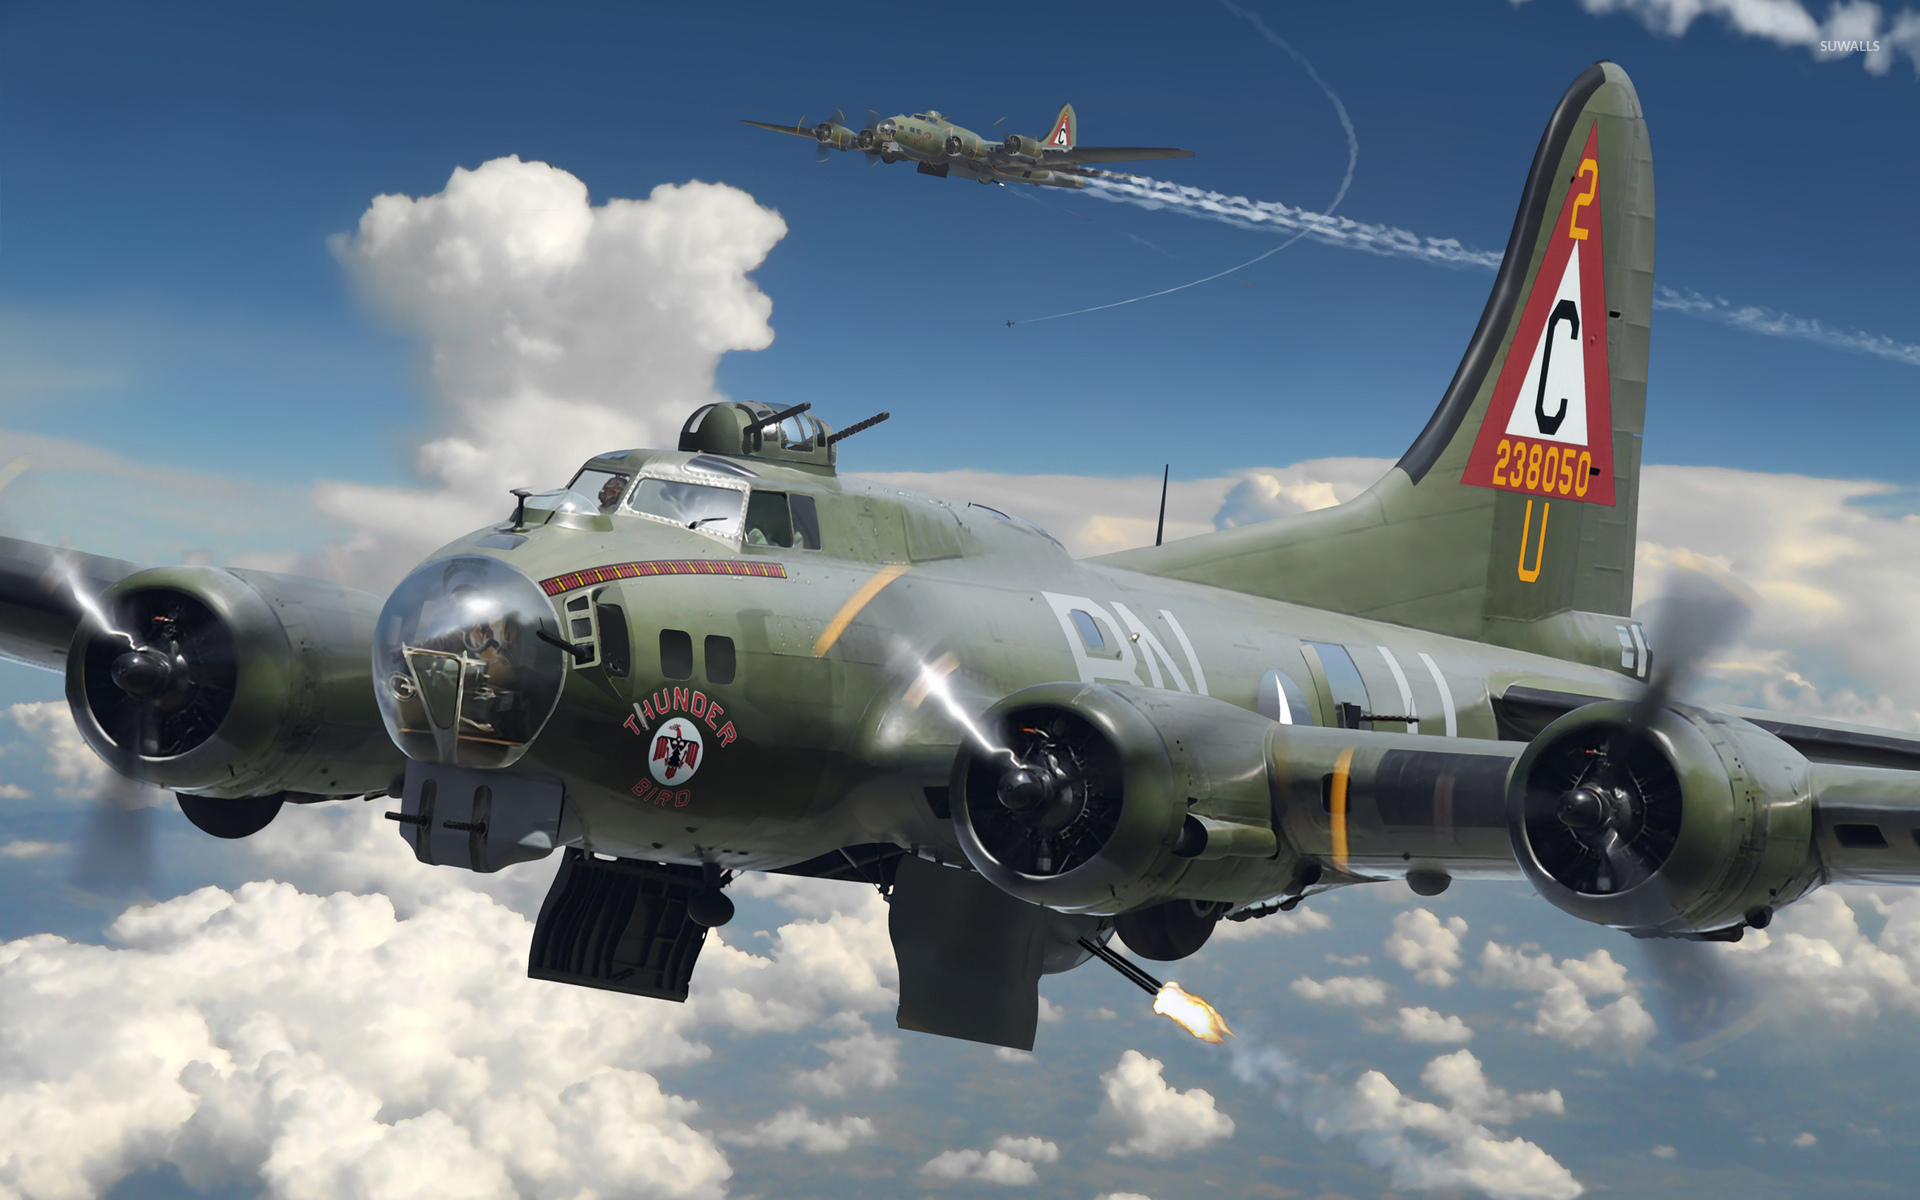 Boeing B 17 Flying Fortress wallpaper   Aircraft wallpapers   46434 1920x1200